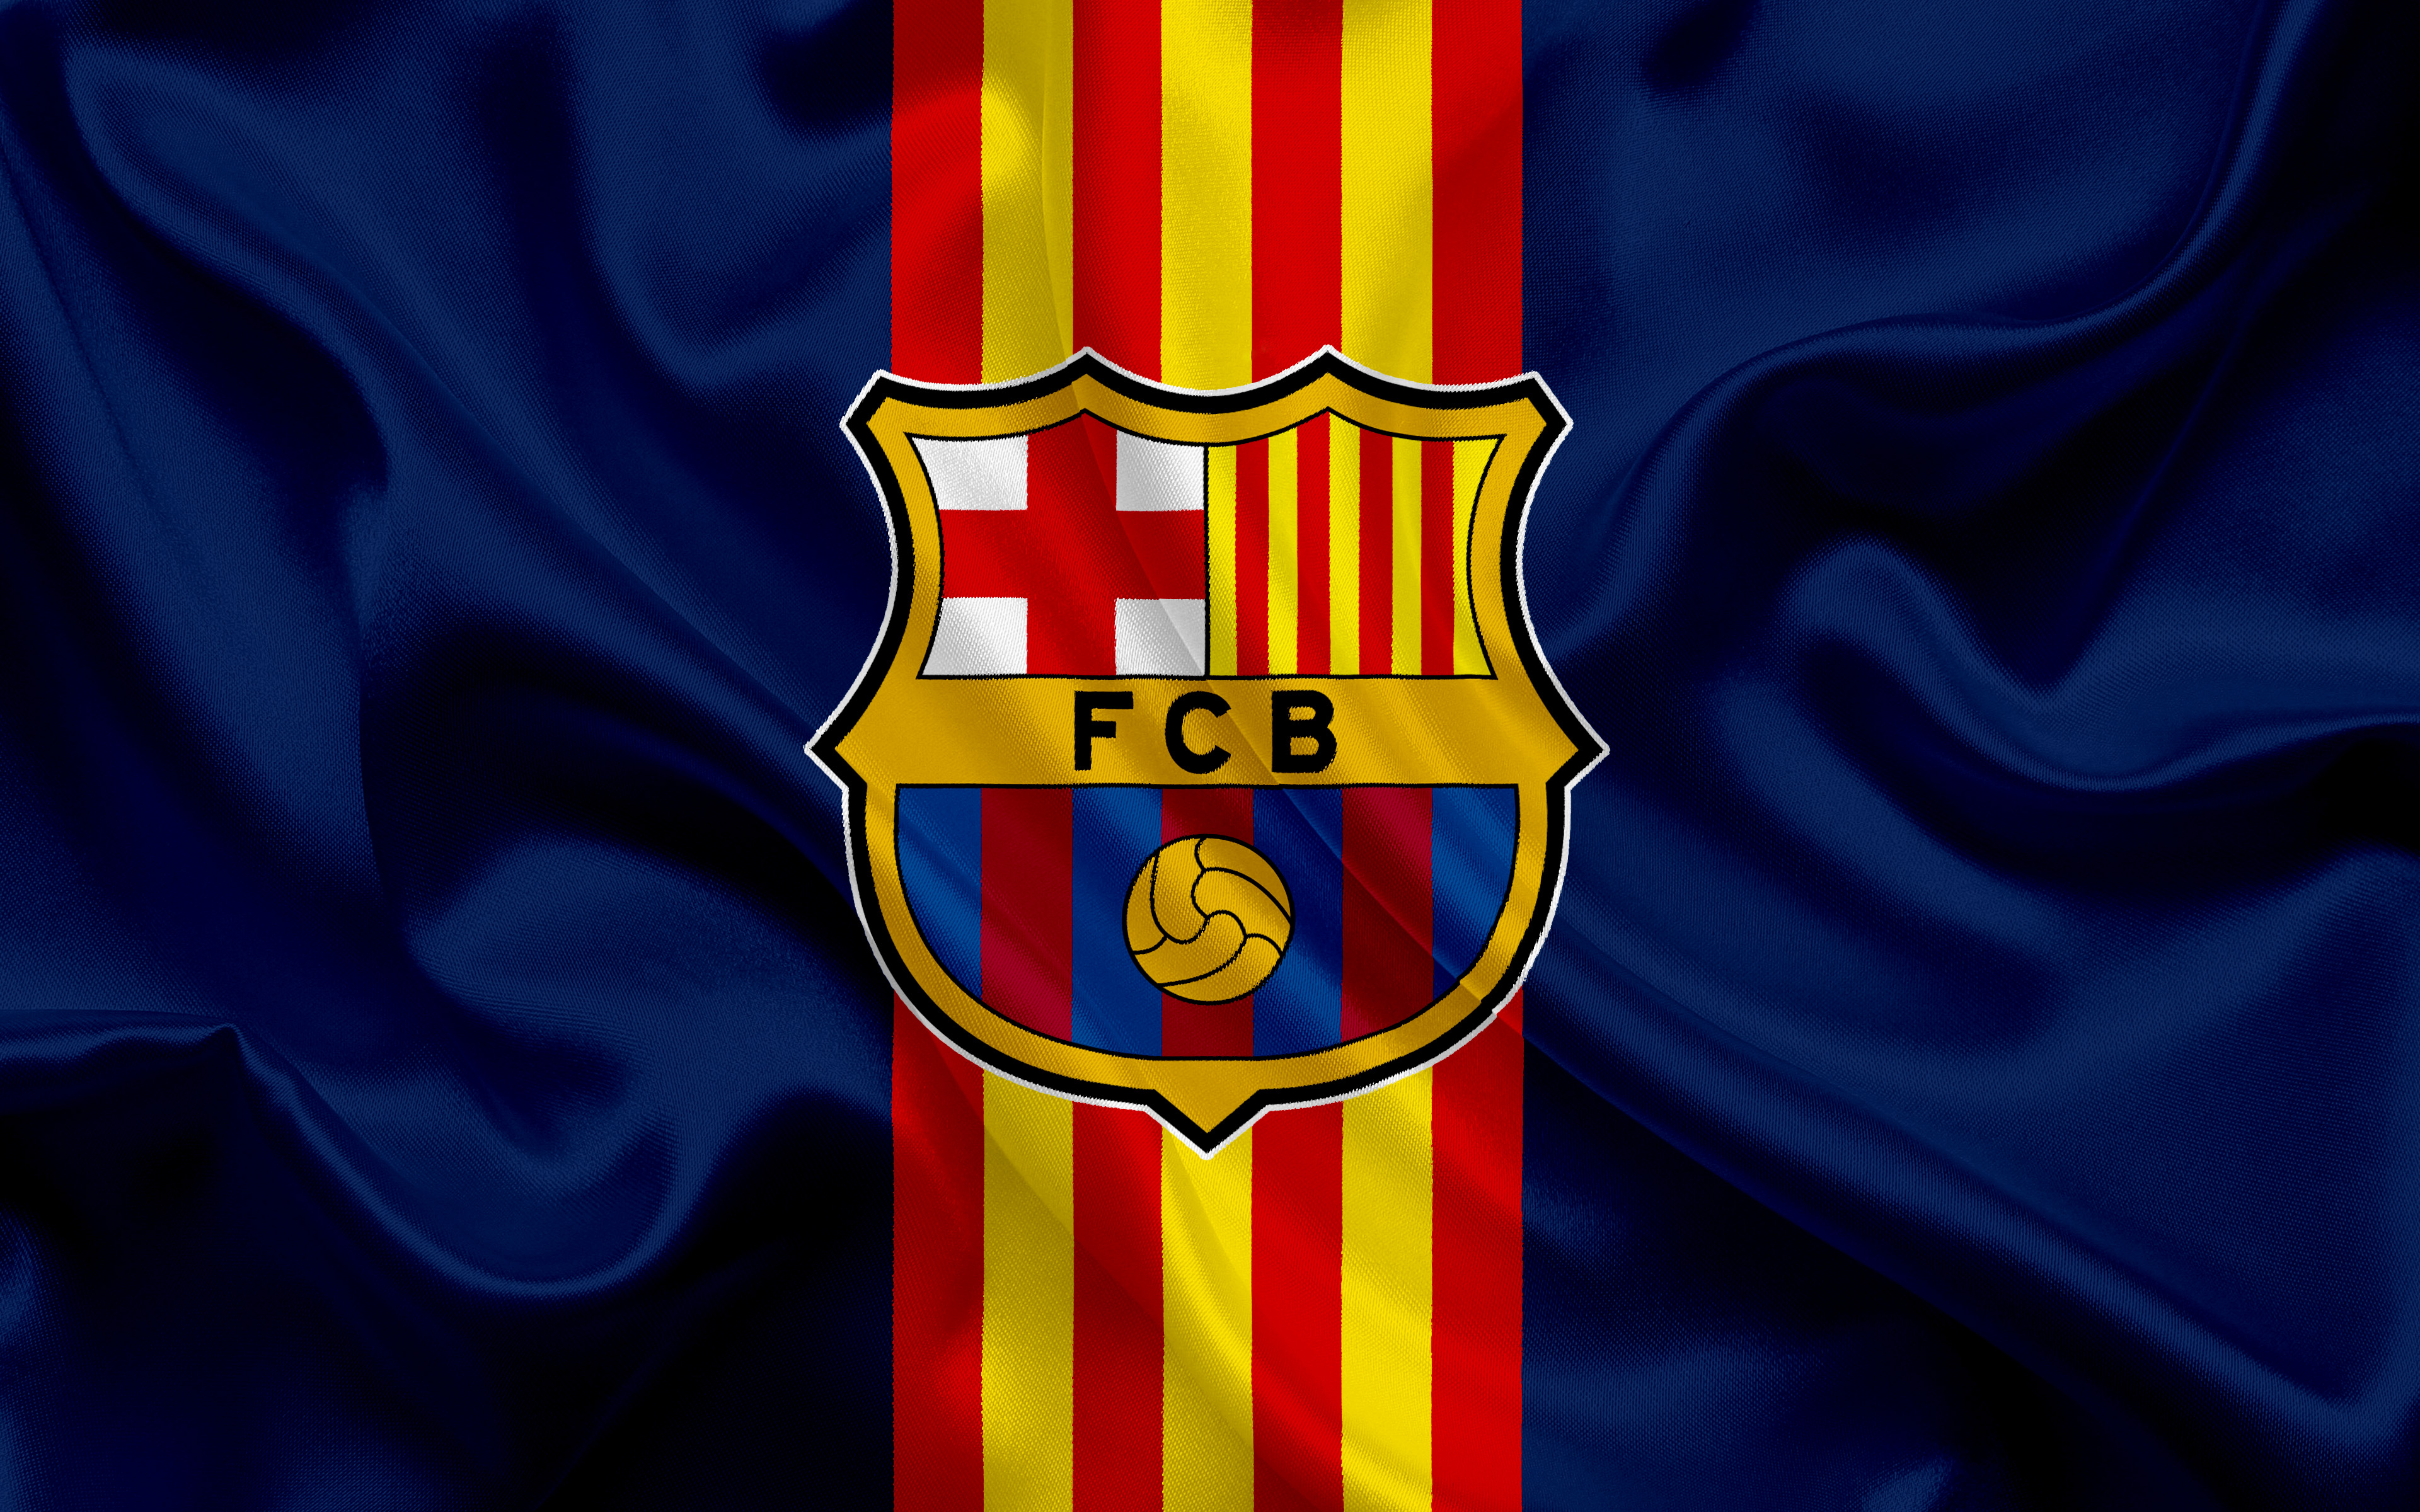 Fc Barcelona Wallpaper 4k.